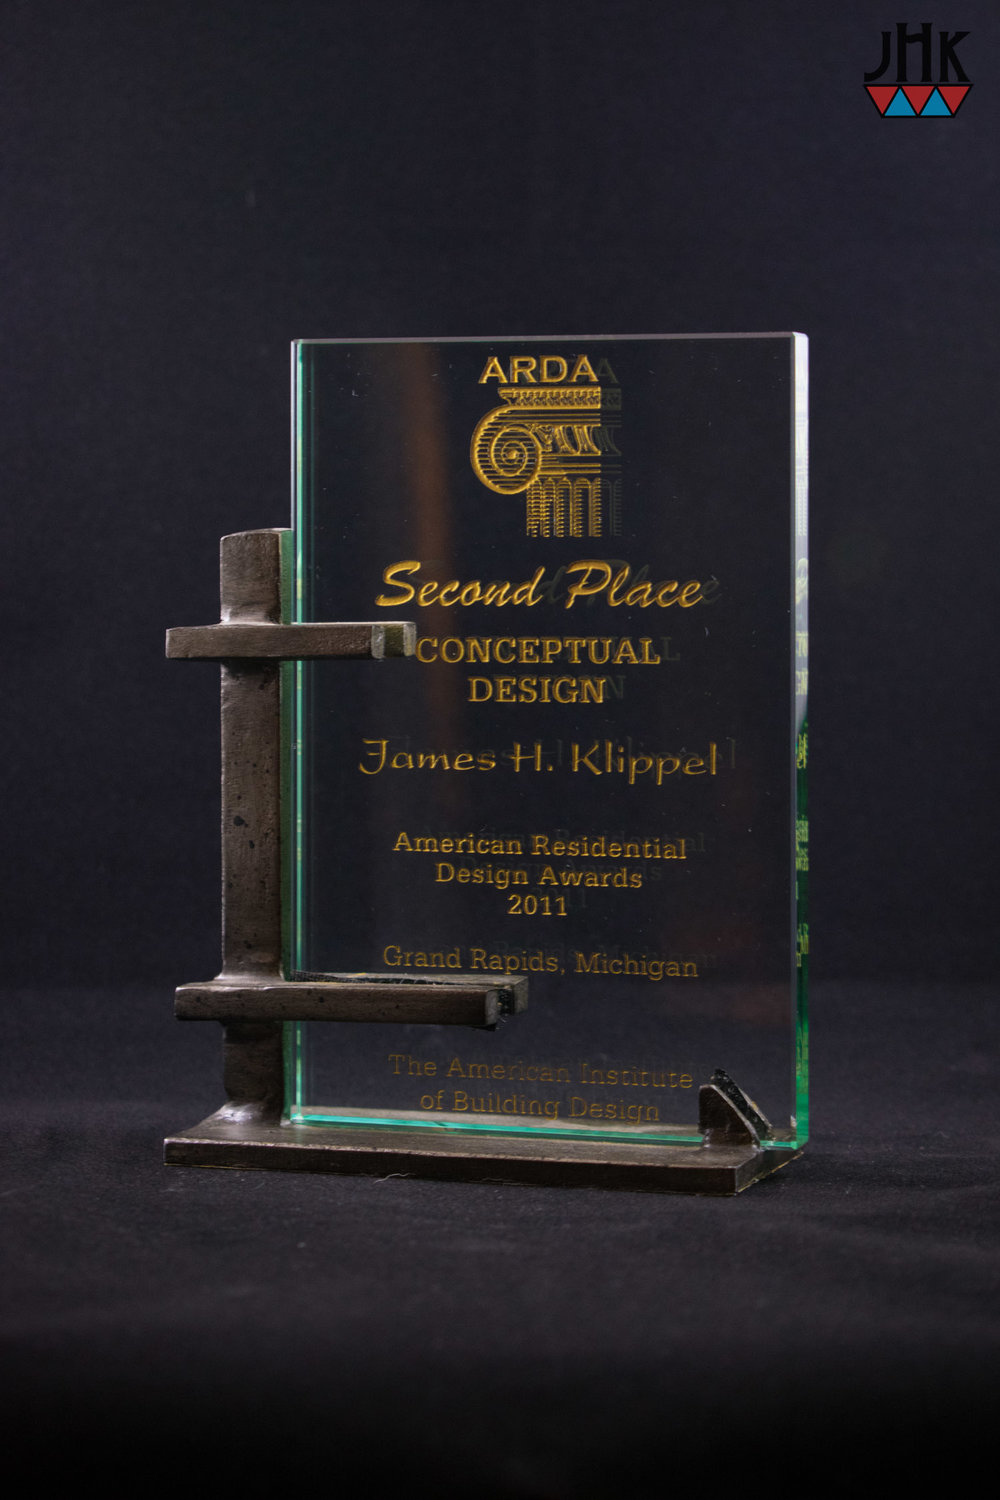 aibd arda award conceptual design grand rapids michigan jim klippel 2011-1.jpg